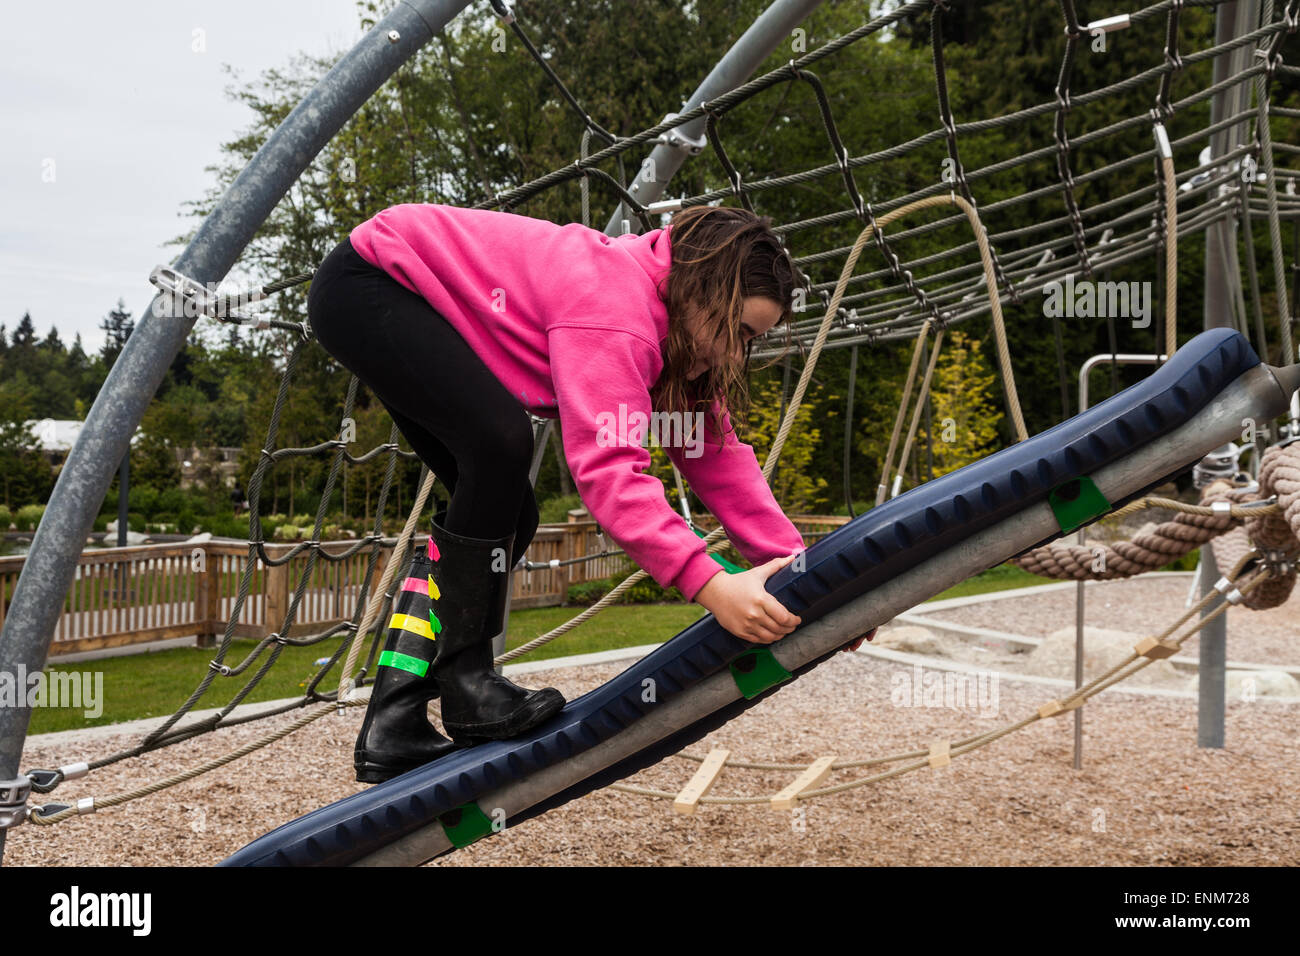 Young girl climbing up a swiveling board at a children's playground - Stock Image